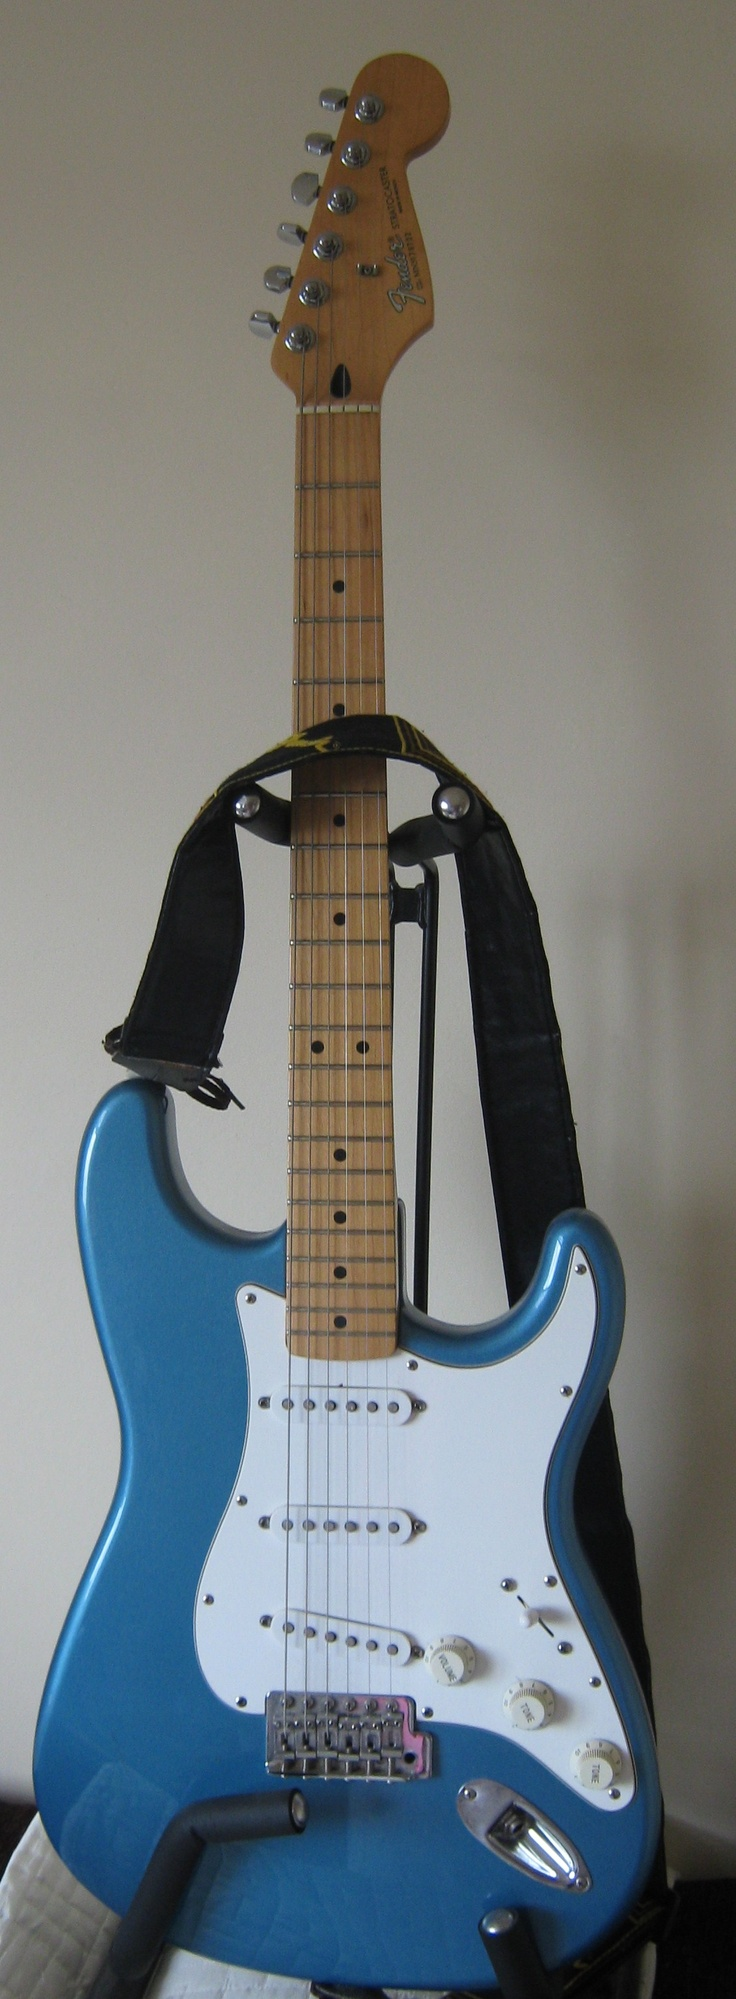 Hubby's Fender Strat Mexican Blonde in Lake Placid Blue